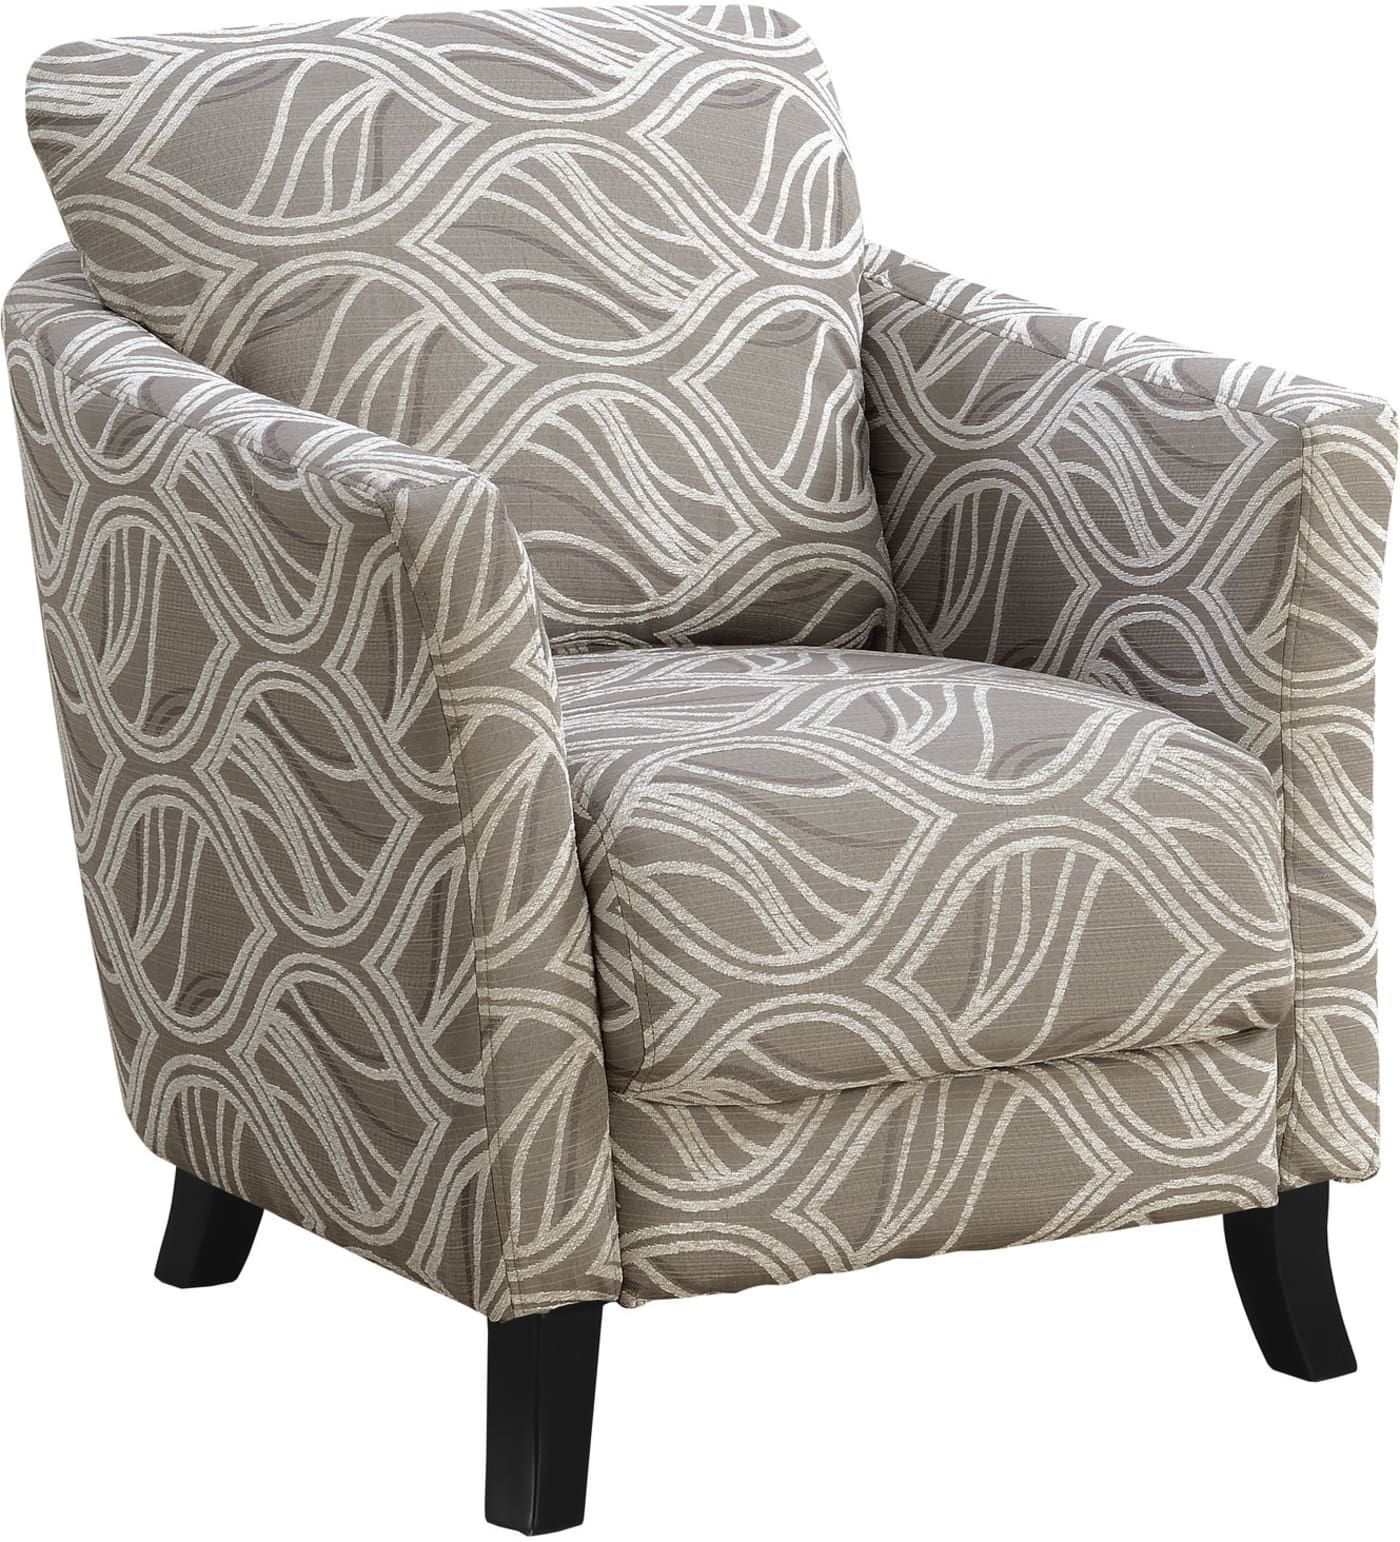 Monarch Specialties 1813 Fabric Metal Accent Chair: Monarch Specialties Taupe Leaf Design Fabric Accent Chair